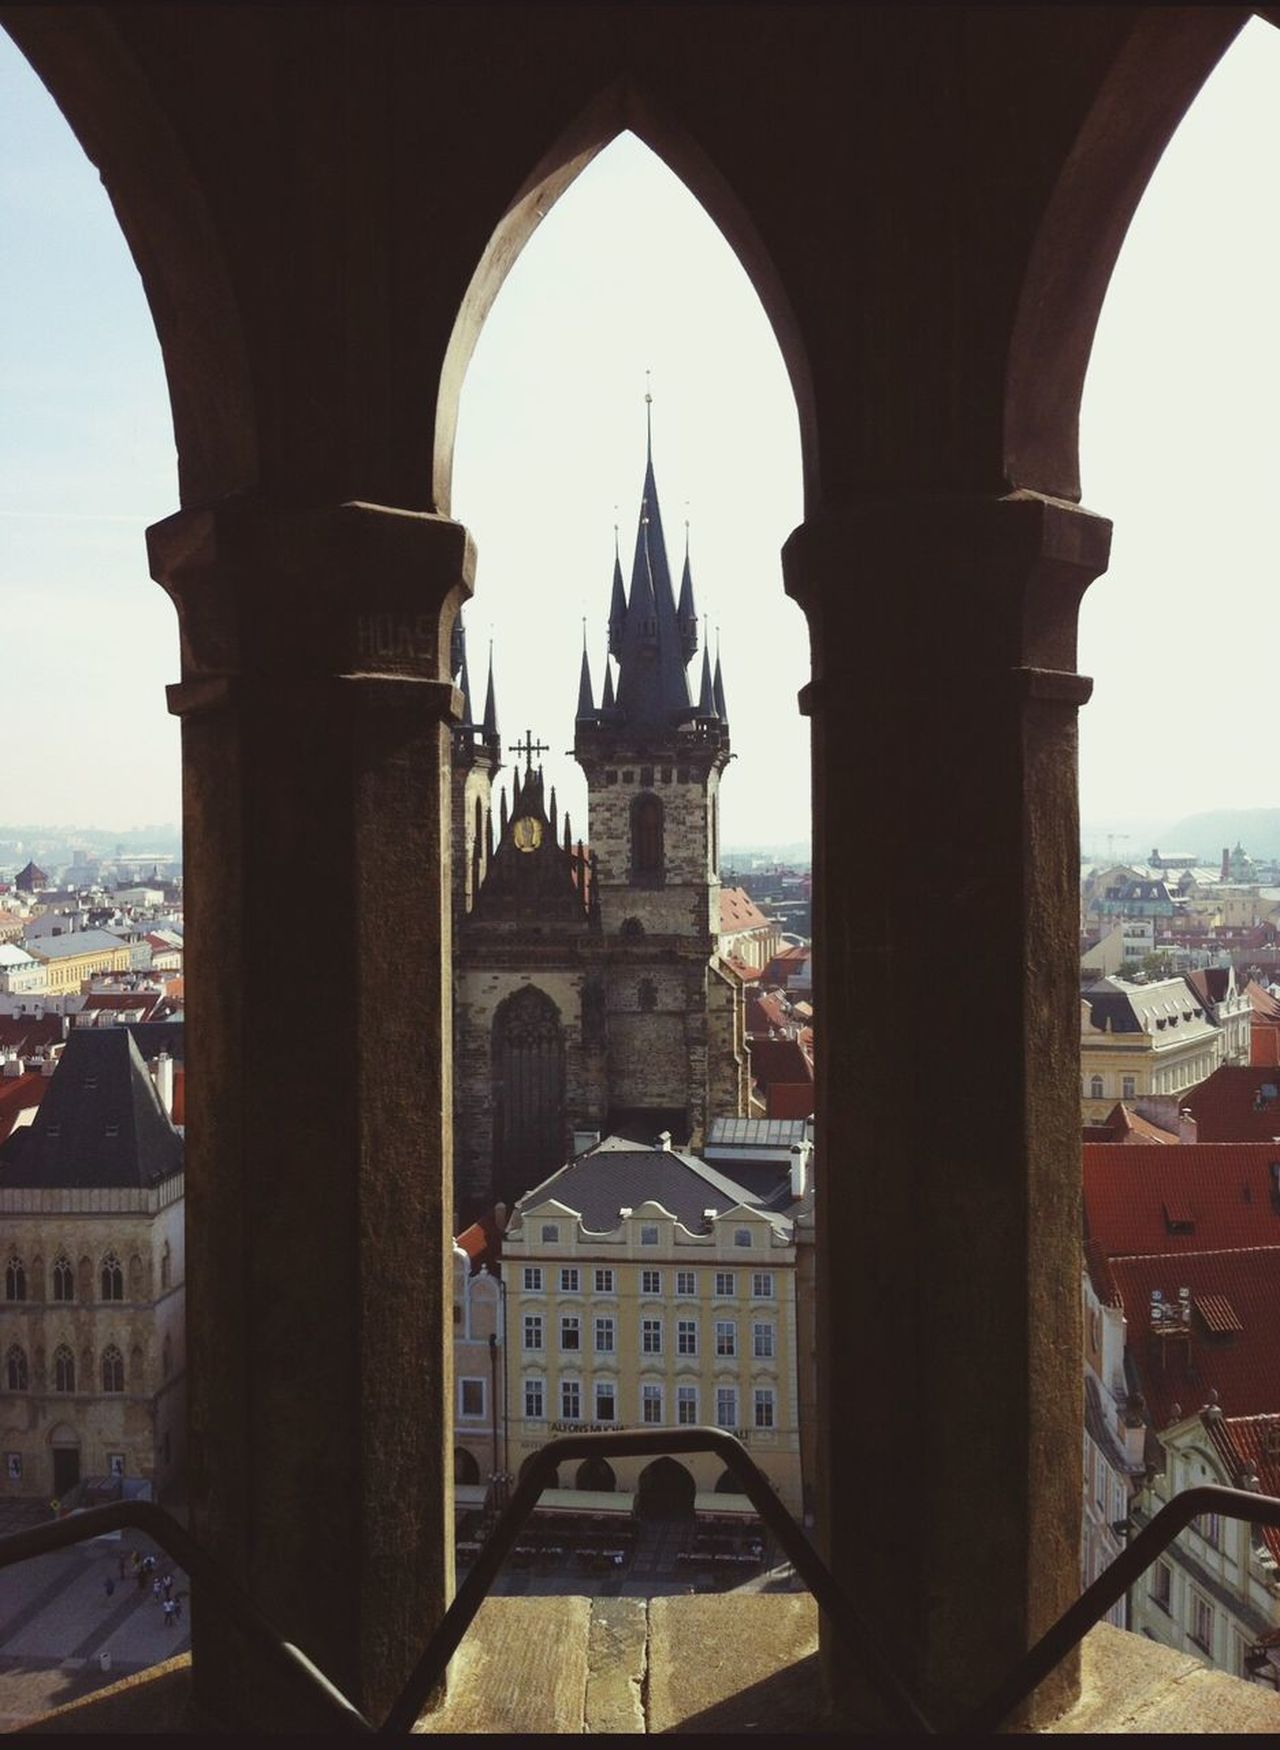 Praha Praga Architecture Arch City Religion Sky Building Exterior Vincenzo Improta WeddingPlanner Napoli Italy Outdoors Marigliano Photography Curch Architecture Clear Sky Photooftheday Built Structure Prague Prague Photography Campanile